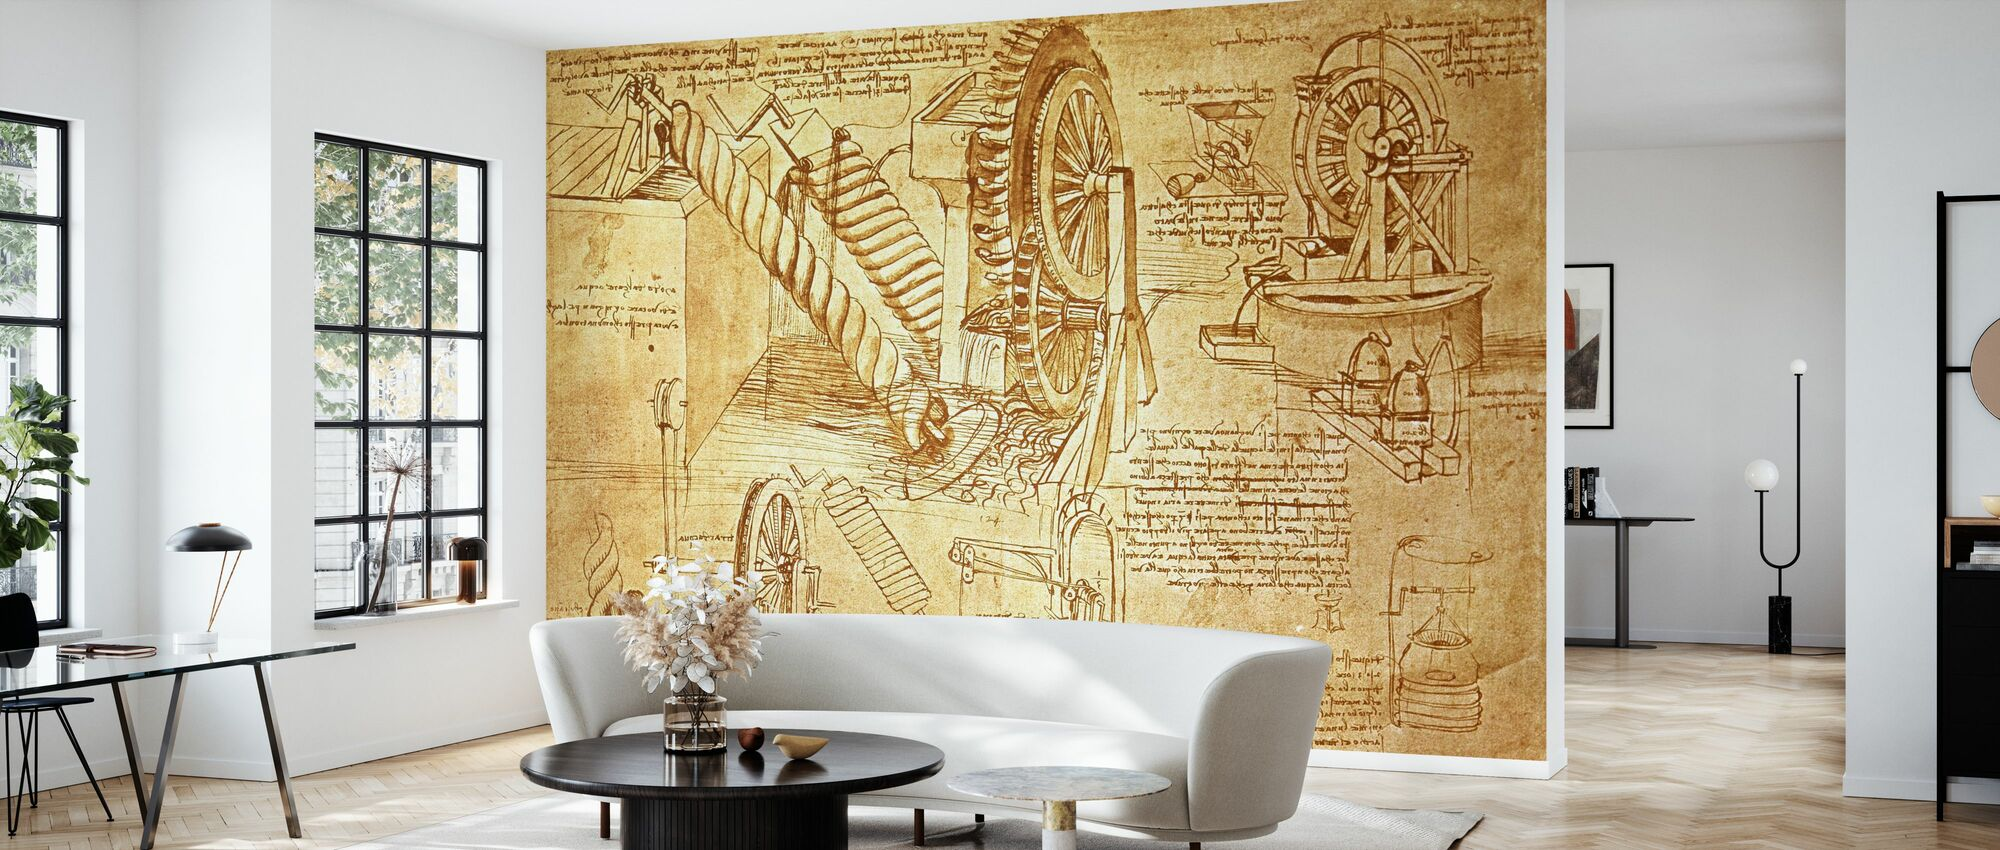 Leonardo da Vinci - Atlanticus - Wallpaper - Living Room